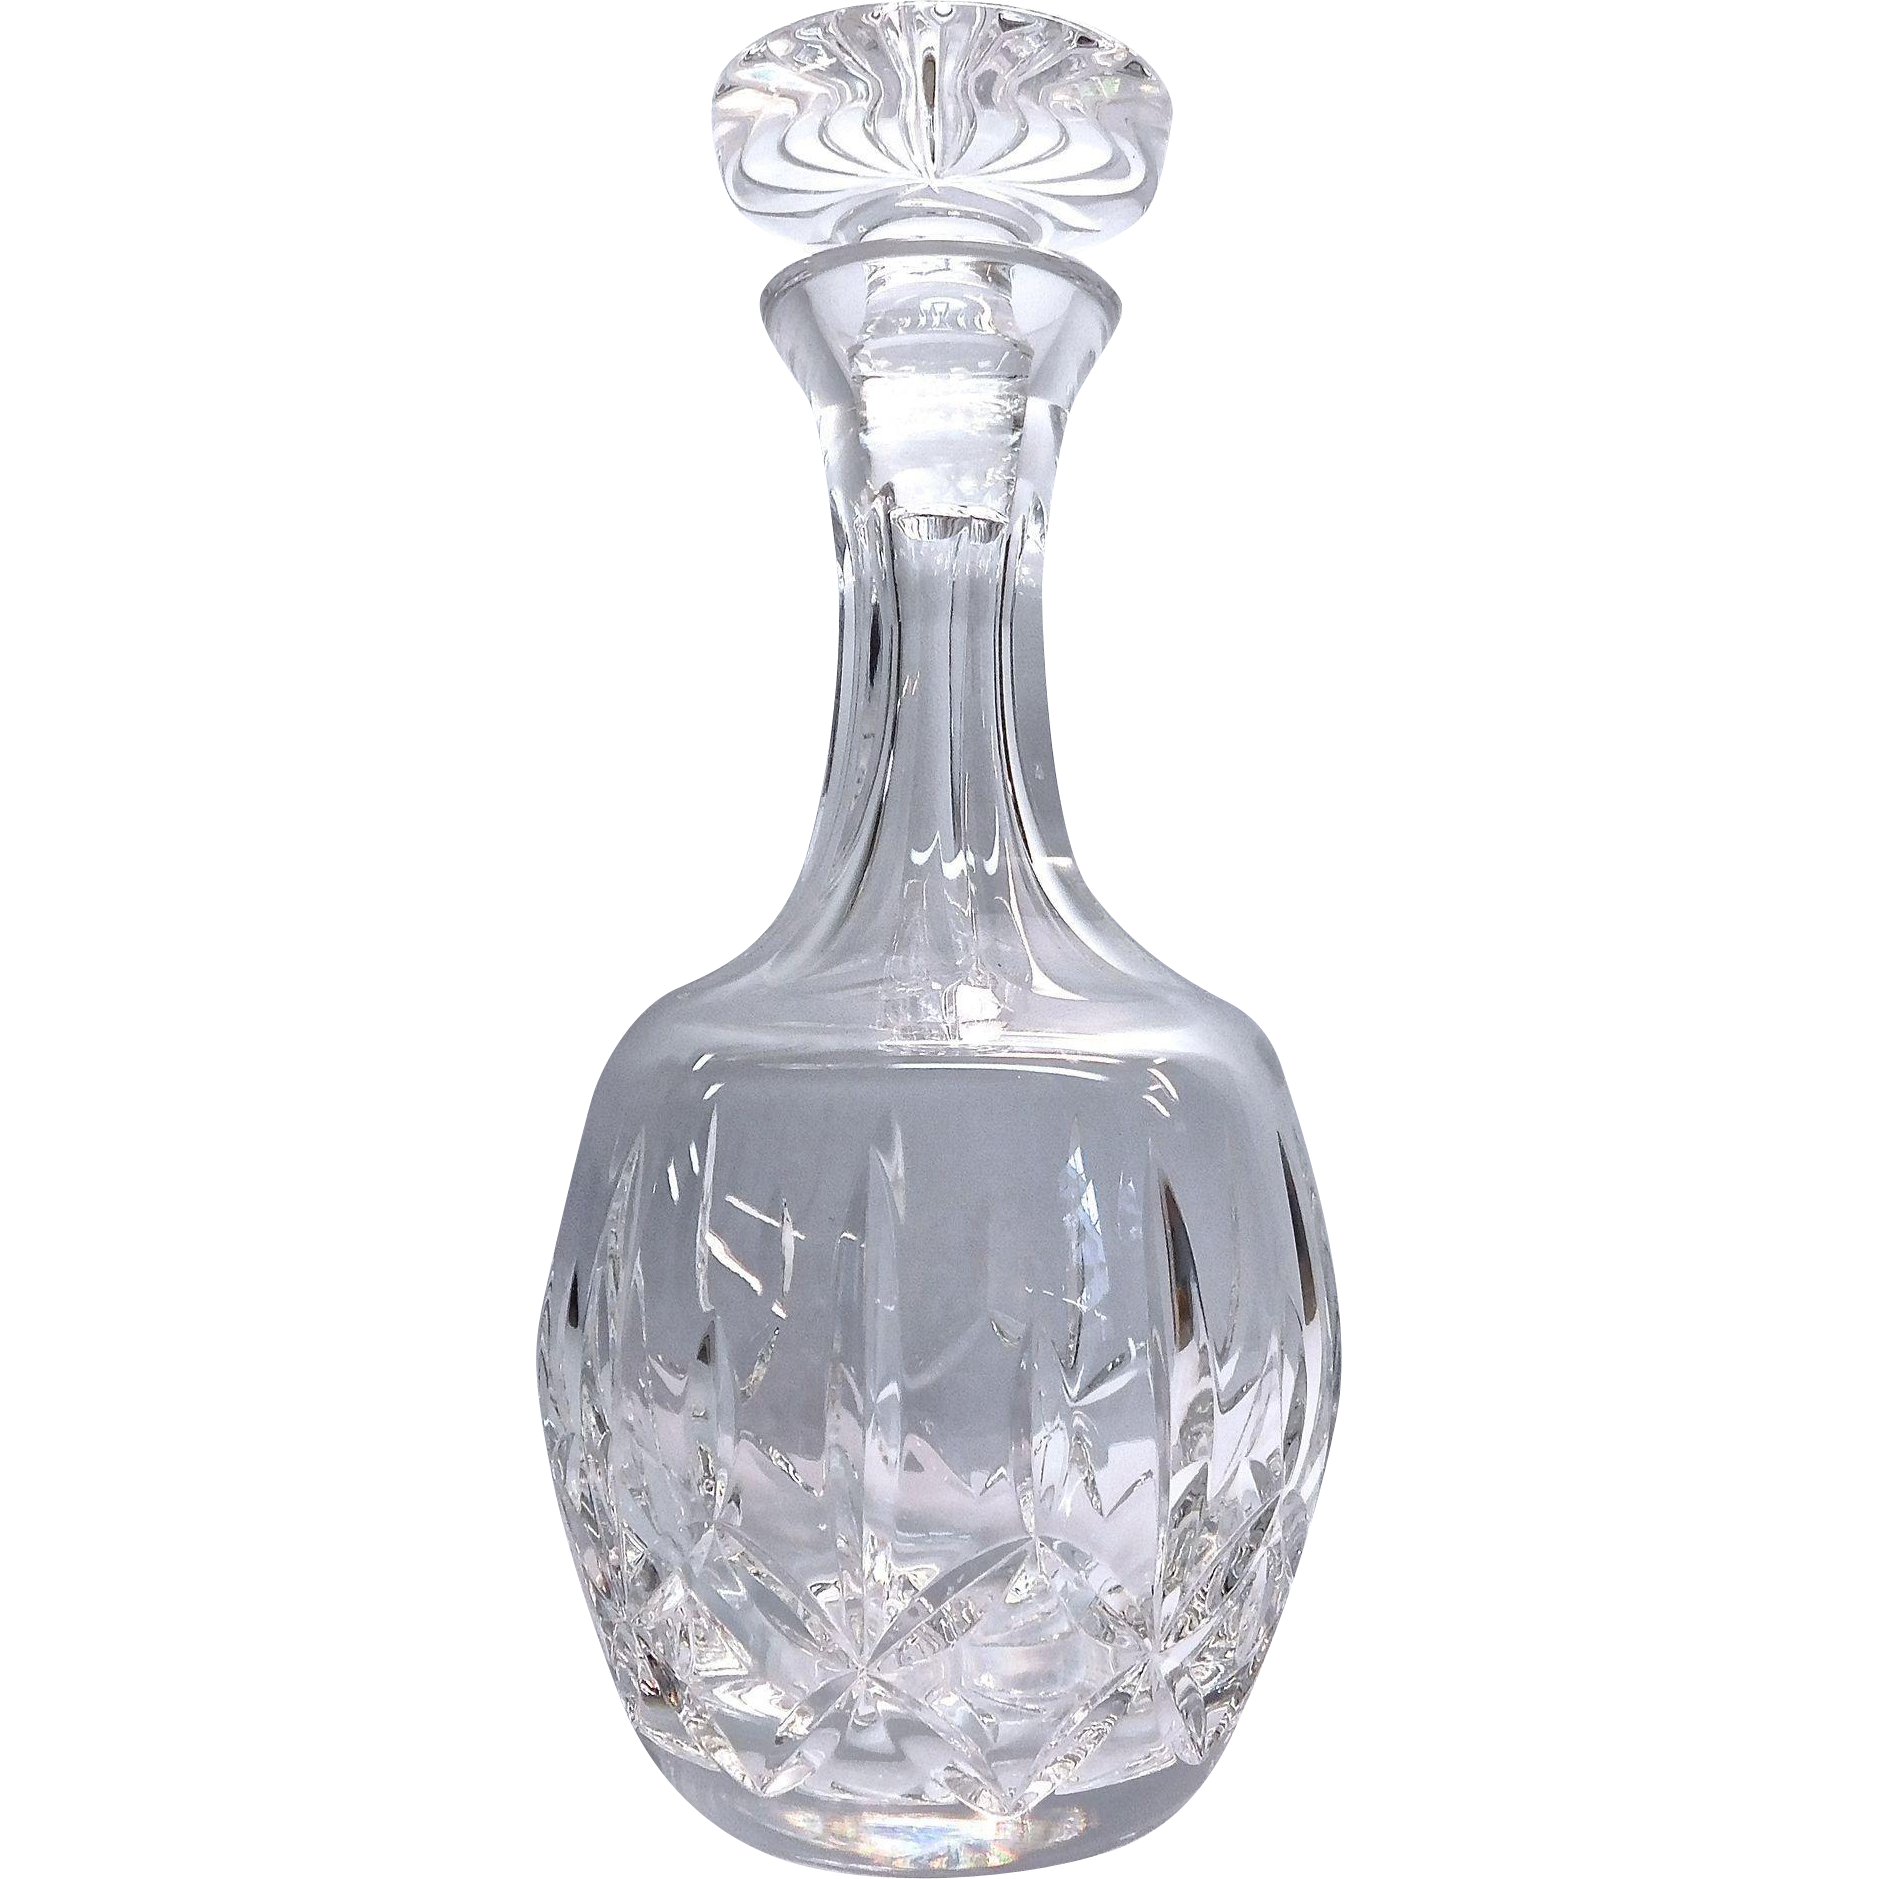 Lead Crystal Glass Decanter With Stopper By Atlantis From